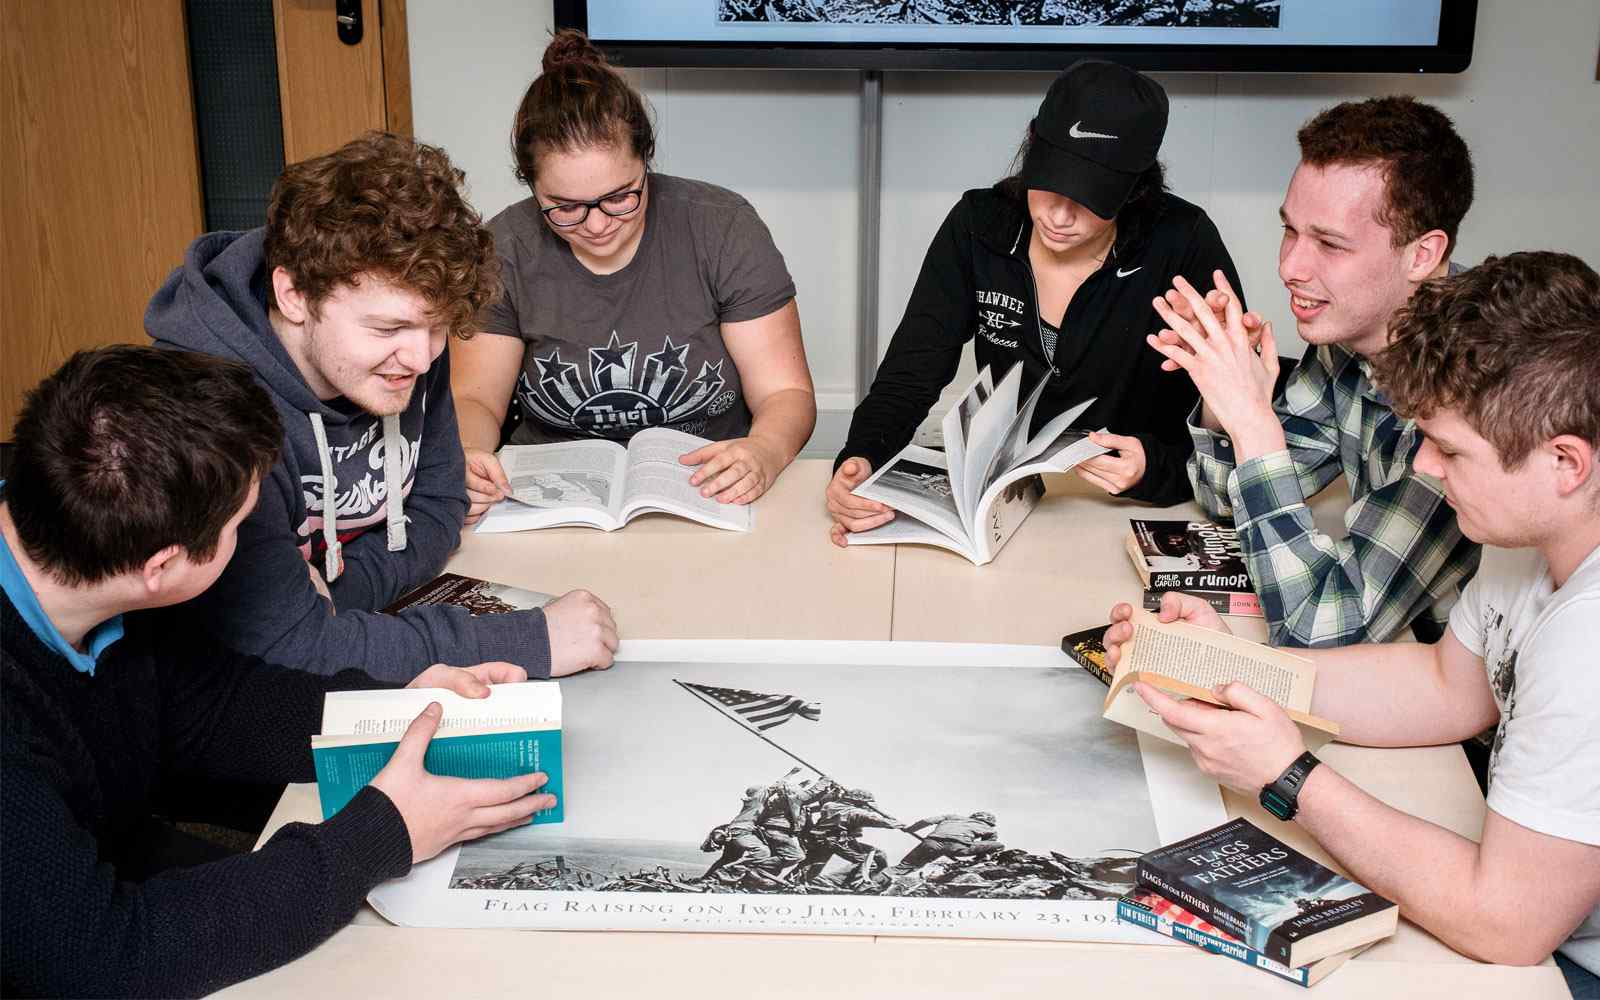 6 students sit around a table reading war studies books.